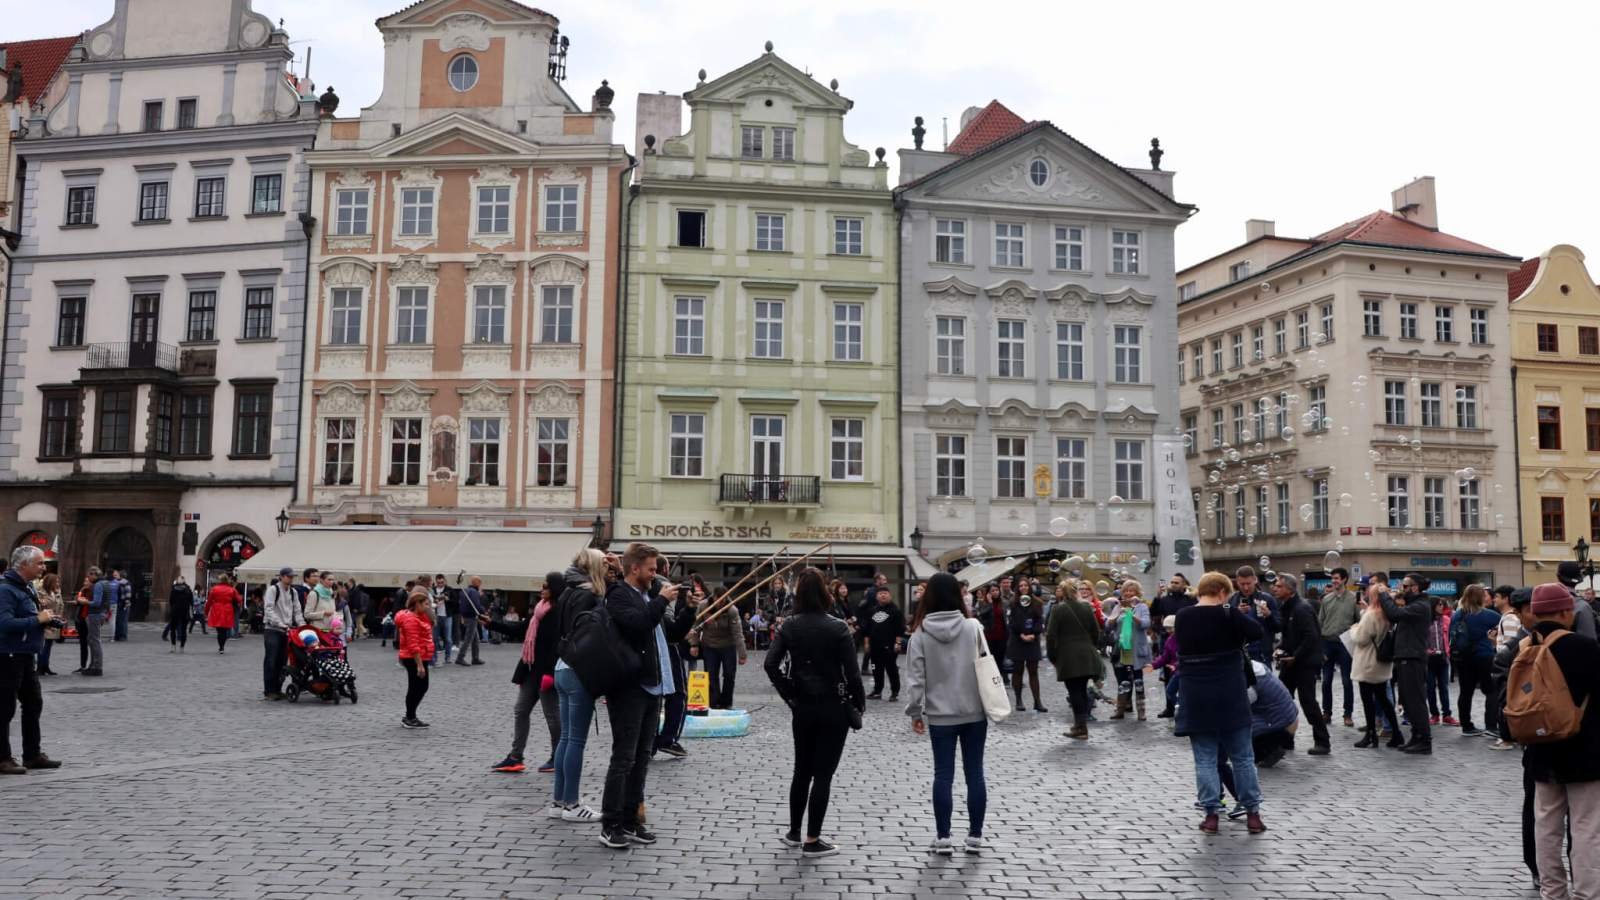 Colorful buildings in Old Town Square